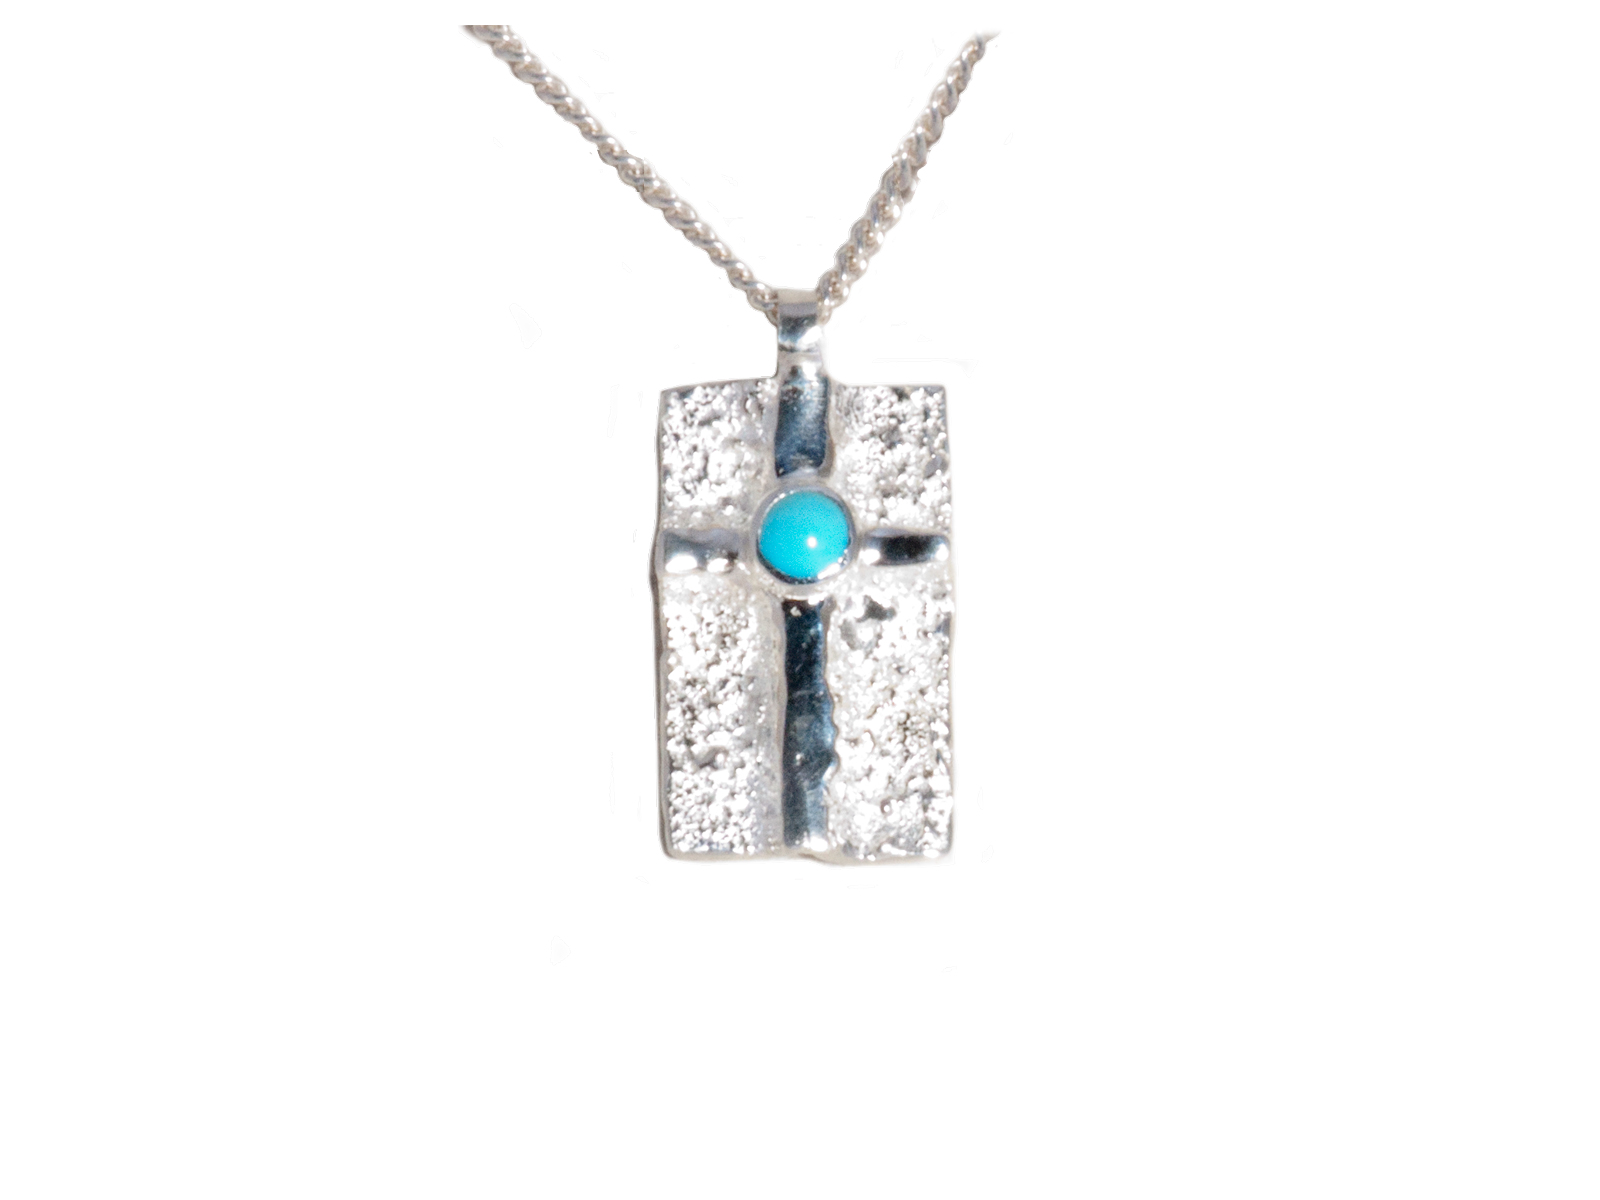 Sterling Silver Sleeping Beauty Turquoise Cross Necklace